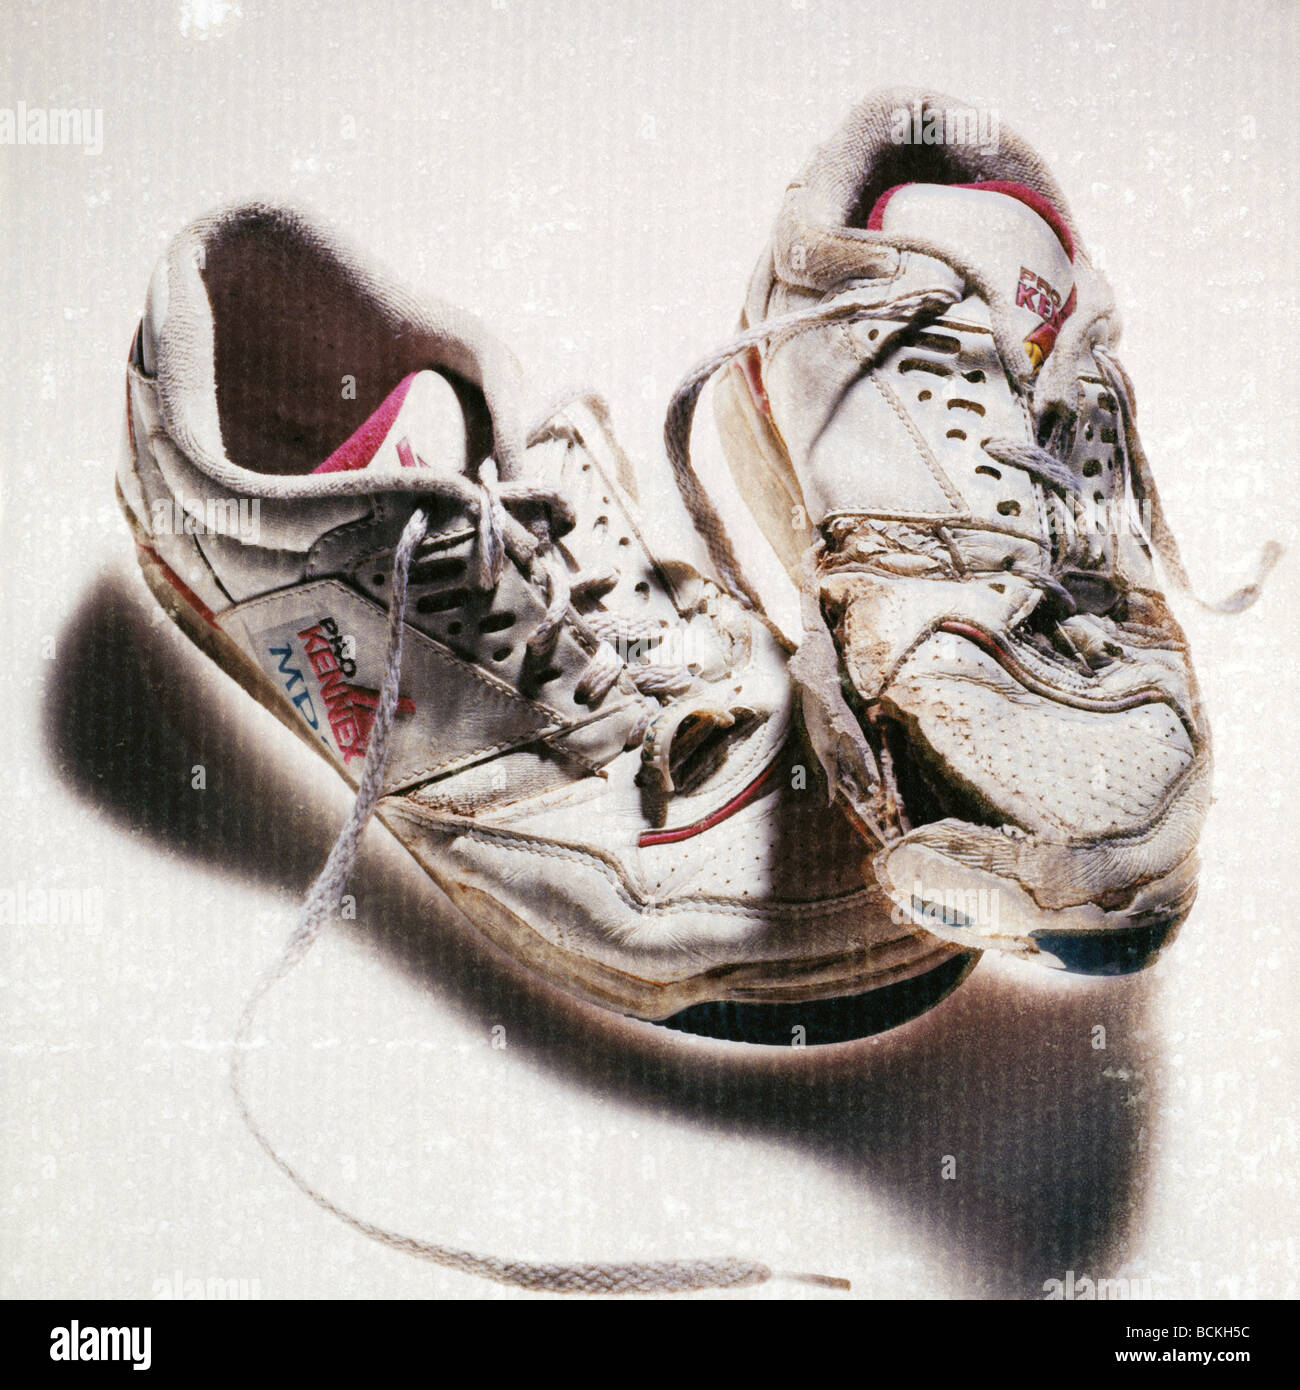 Images Old Alamy Stock Shoes Tennis Photosamp; 5j4RA3L